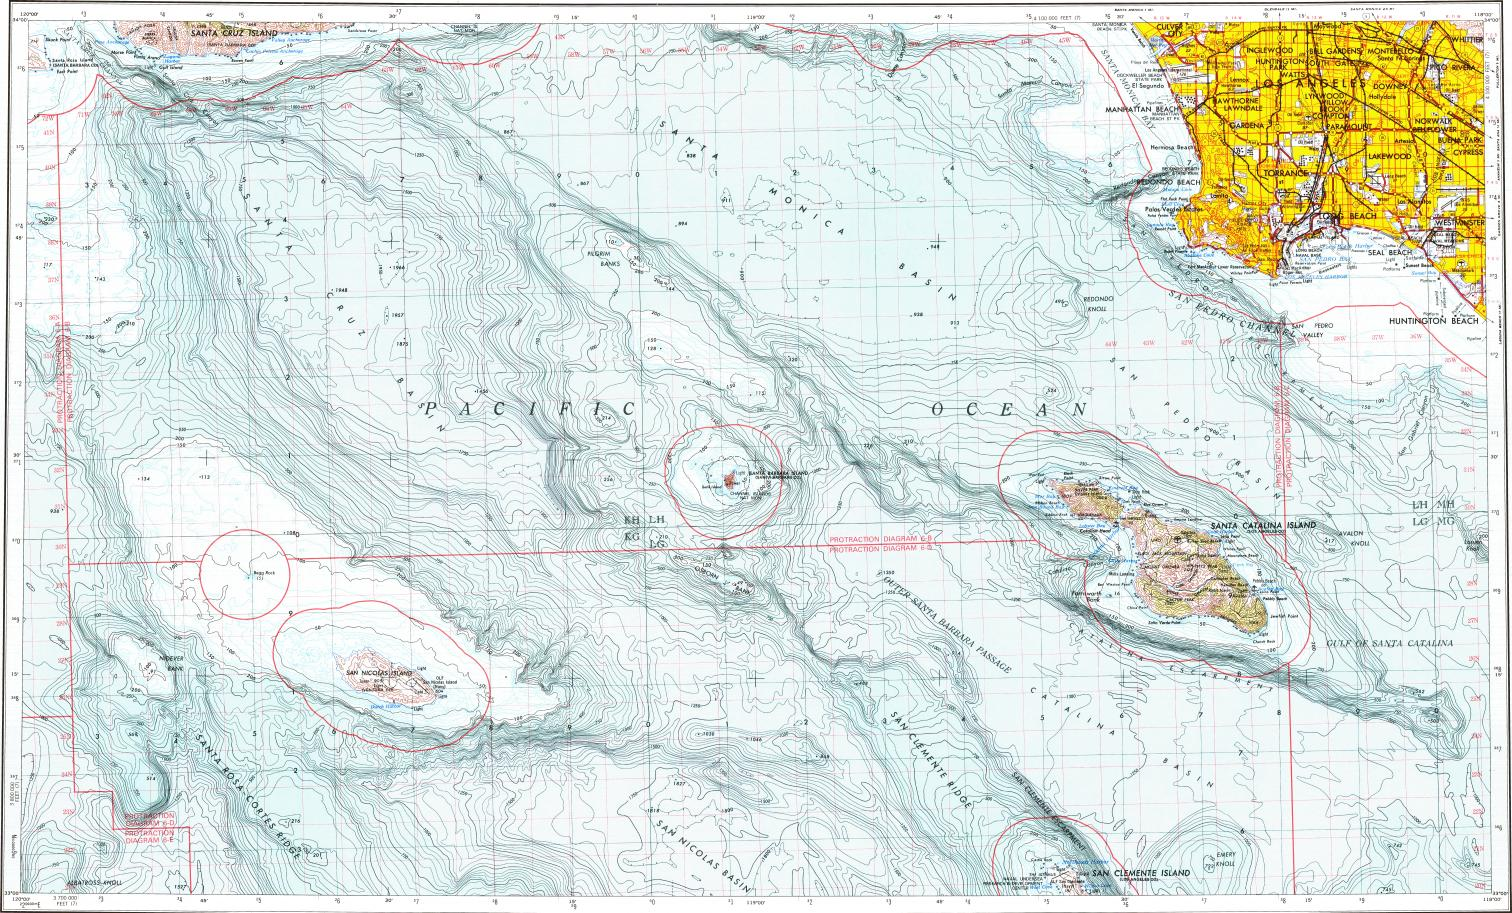 Download Topographic Map In Area Of Long Beach Huntington Beach